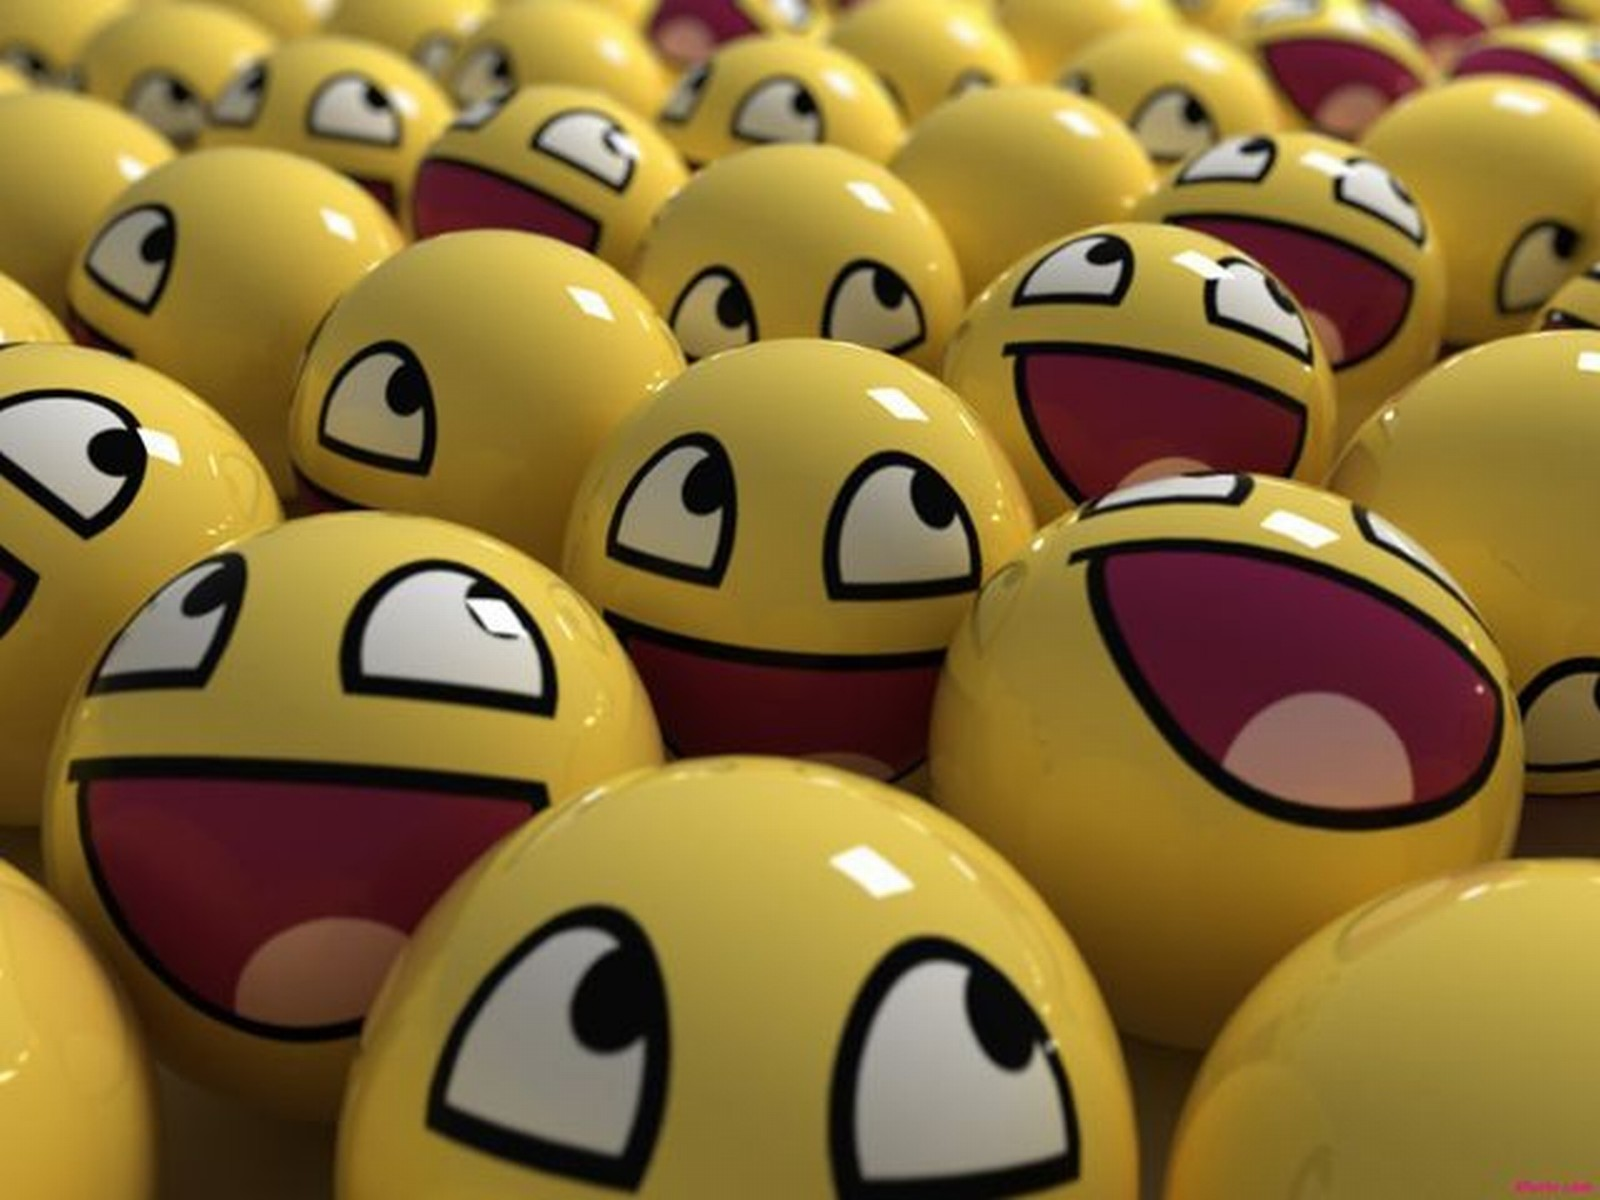 Smiley Face Backgrounds: 10+ Beautiful Smiley Wallpapers